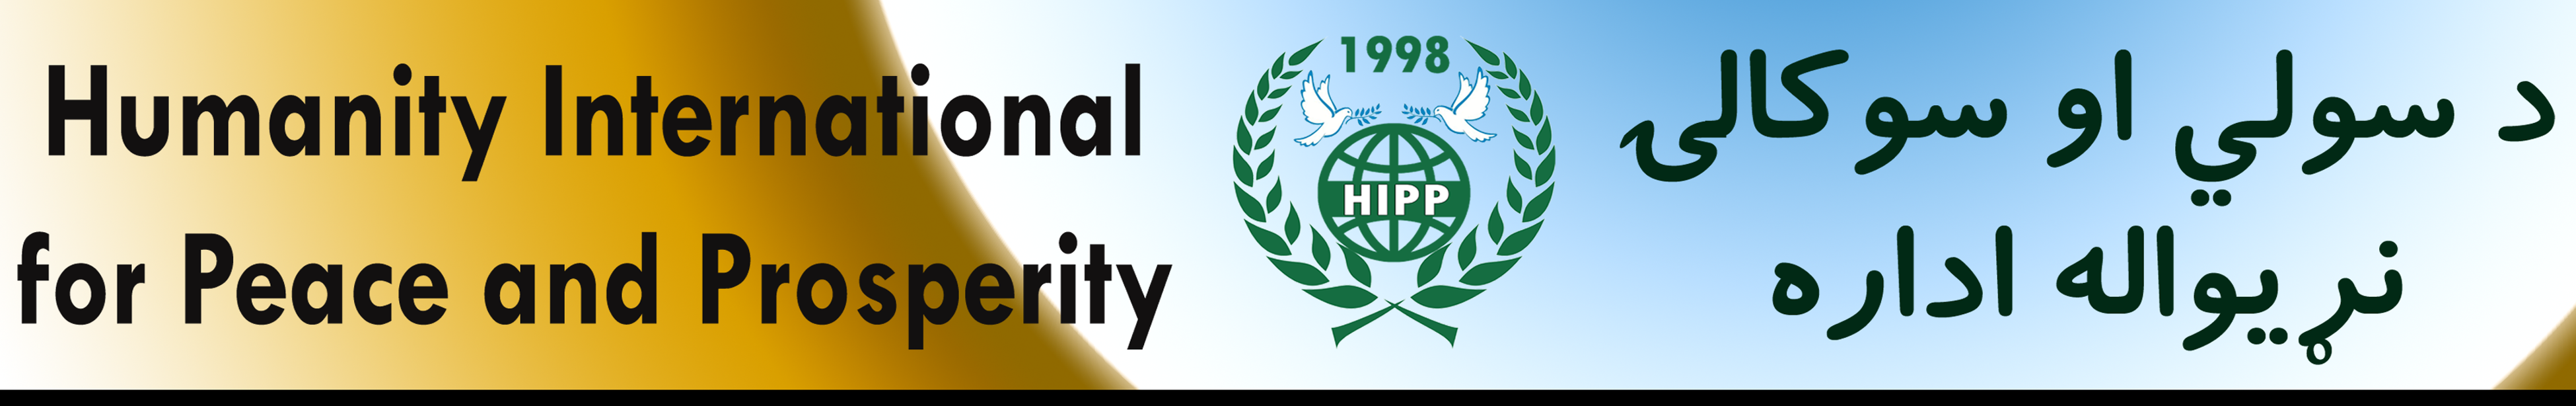 Humanity International for Peace and Prosperity